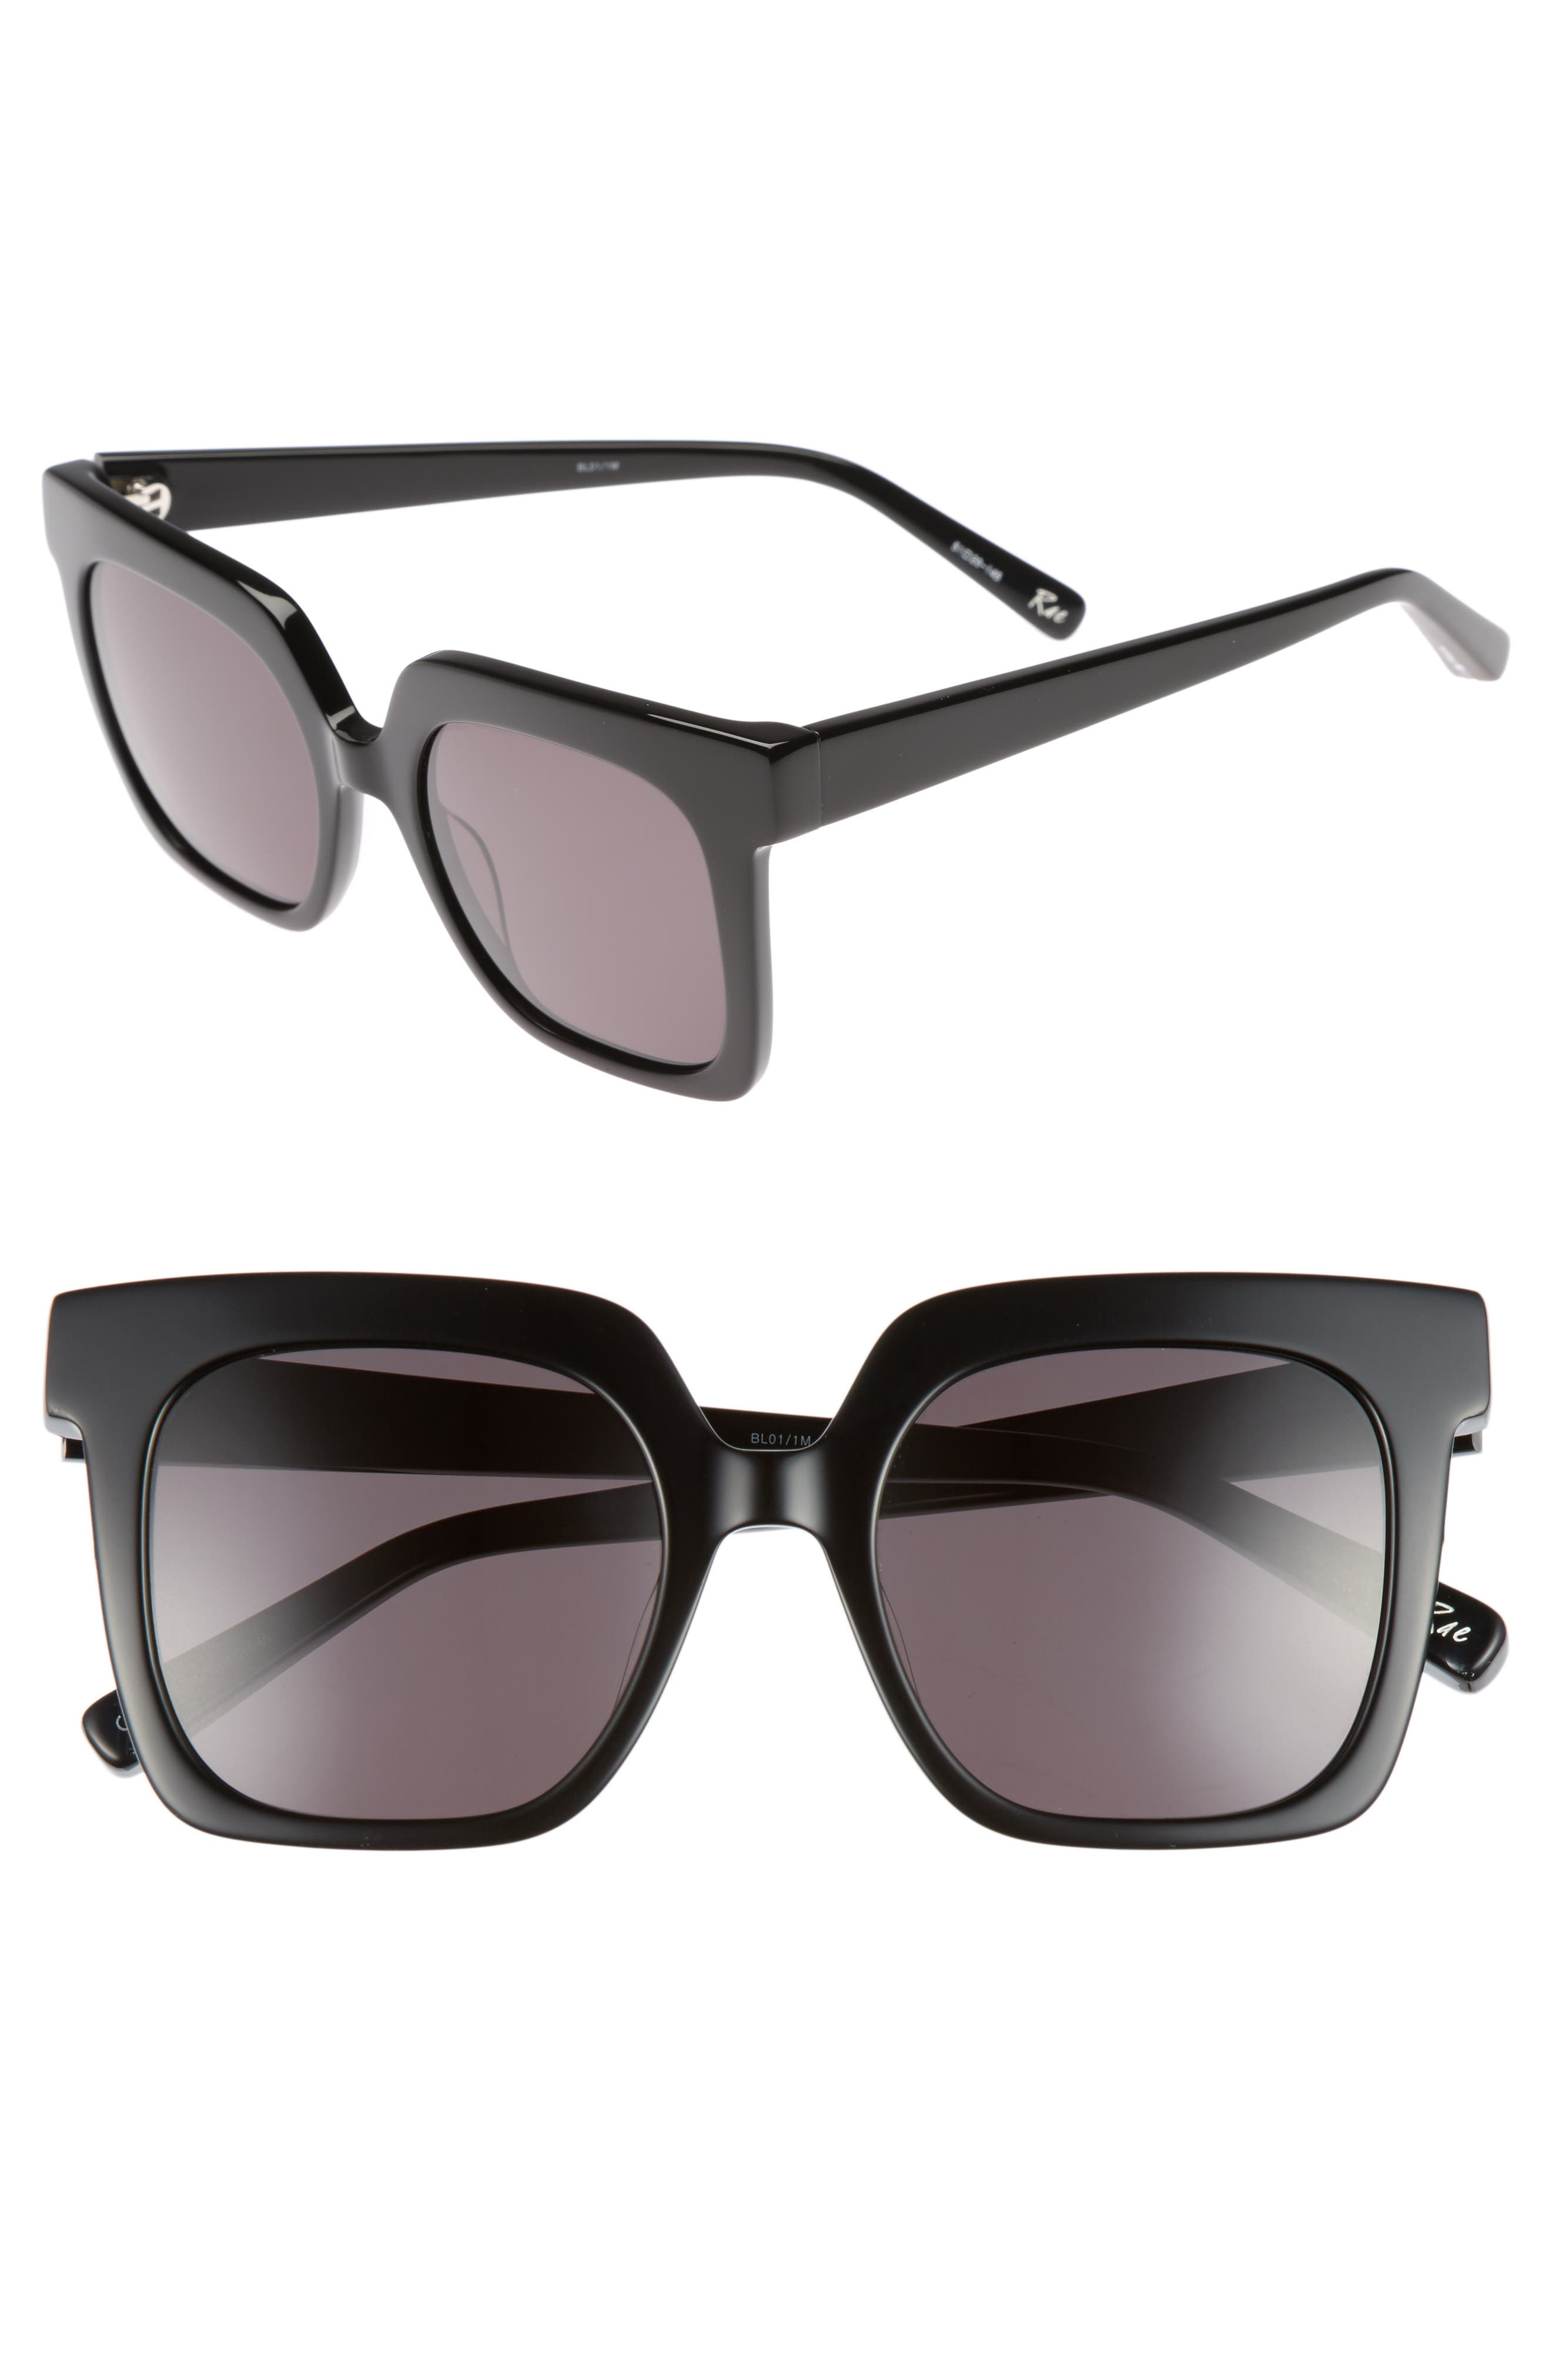 Elizabeth and James Rae 51mm Square Sunglasses